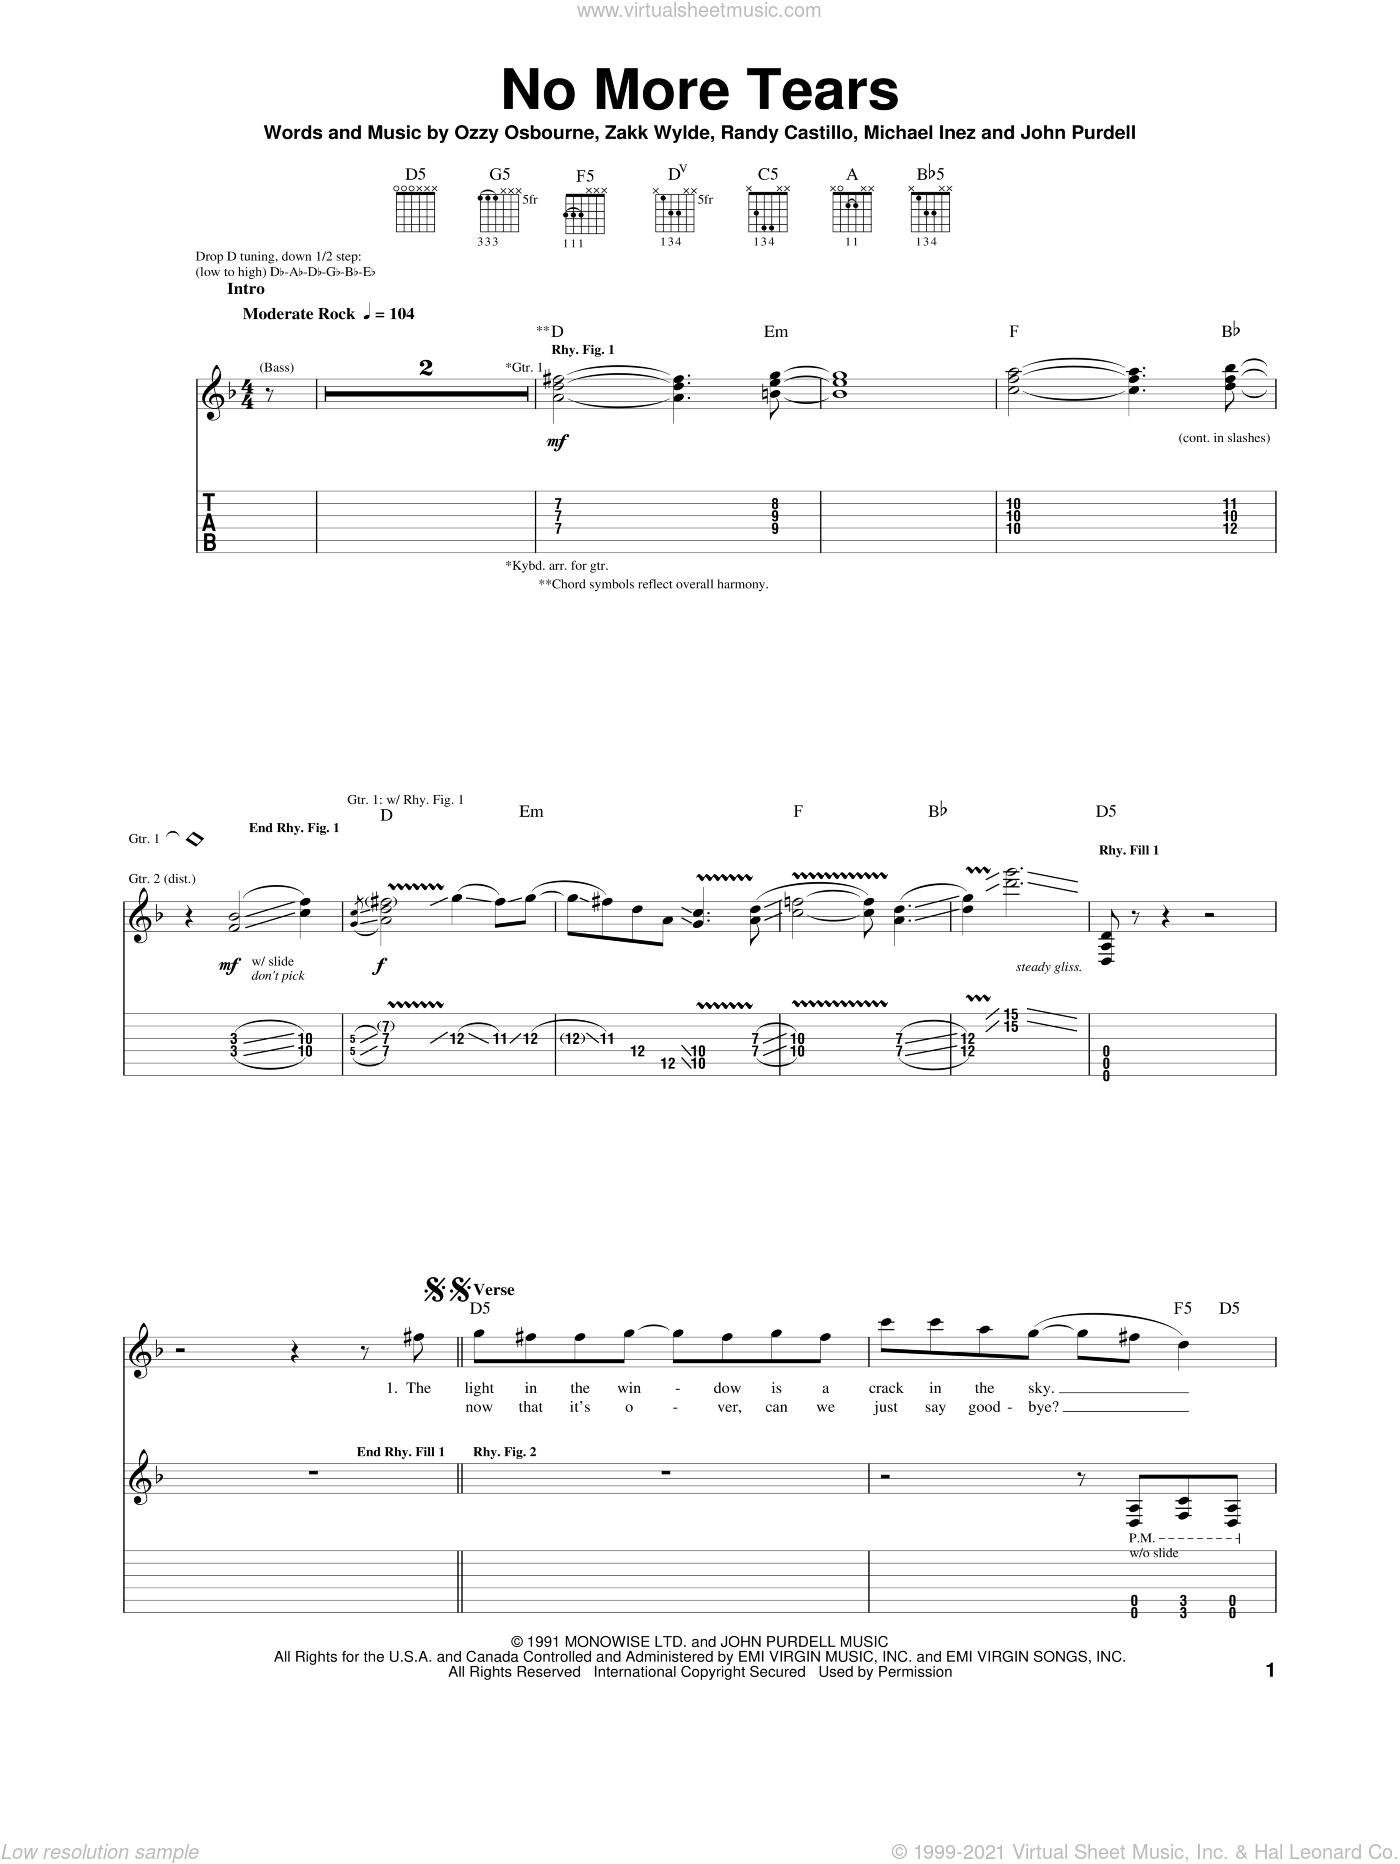 No More Tears sheet music for guitar (tablature) by Ozzy Osbourne, John Purdell and Mike Inez, intermediate skill level